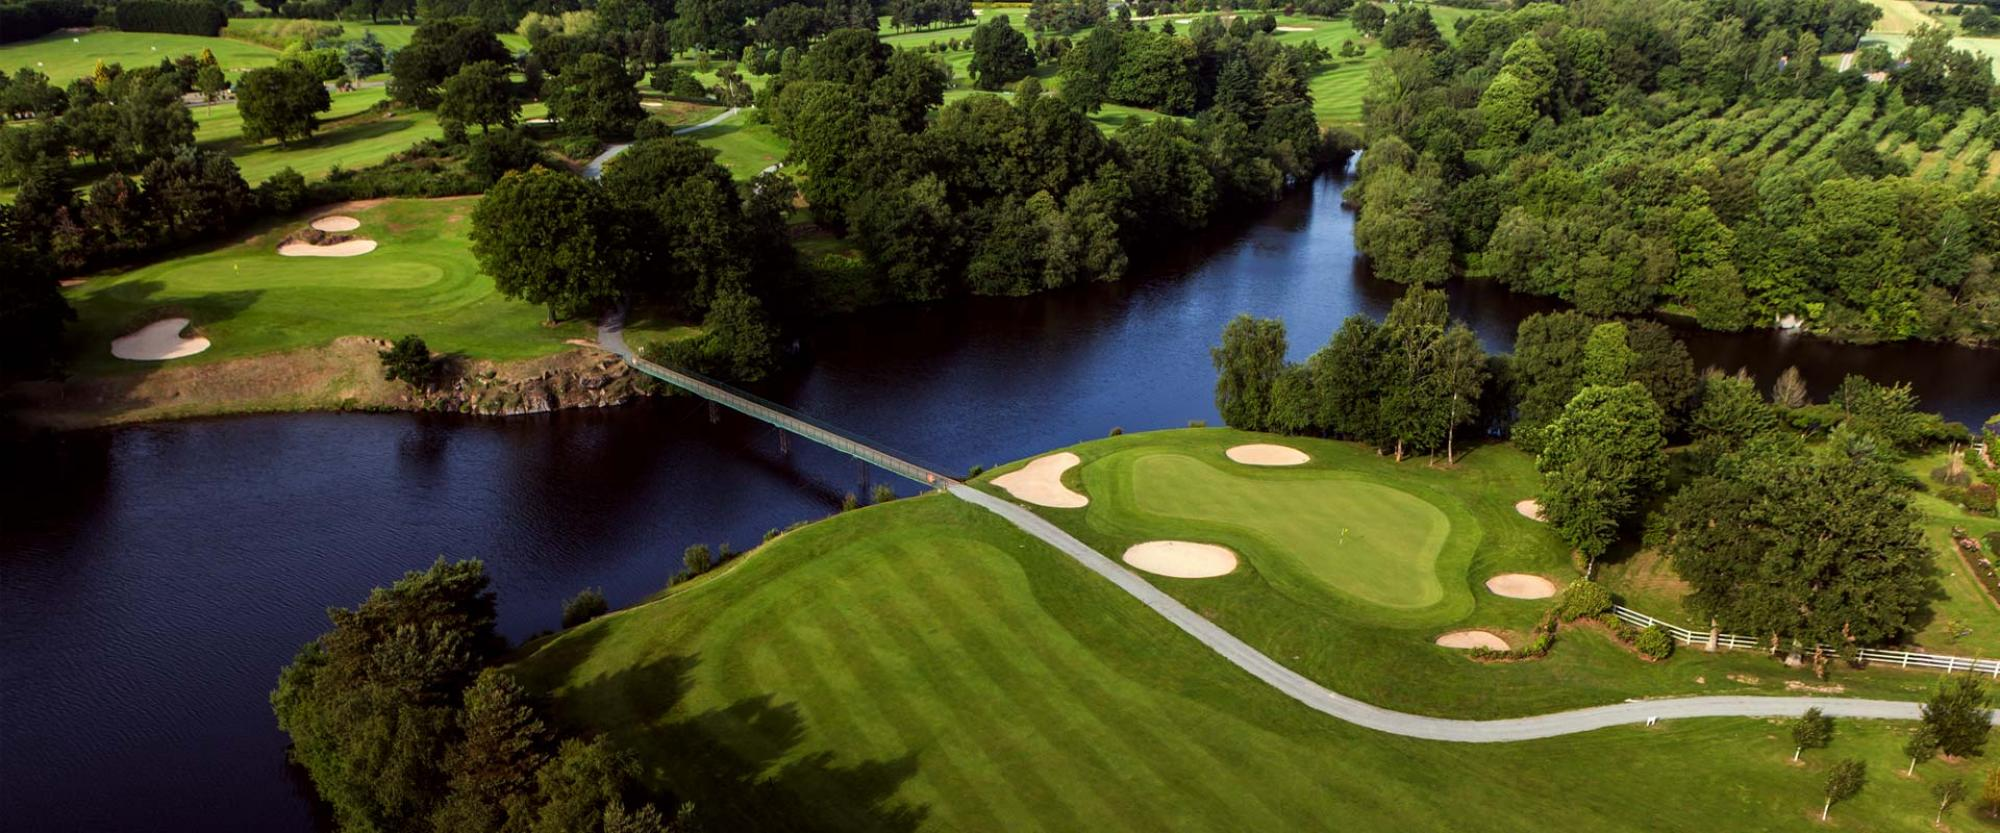 All The Saint-Malo Golf & Country Club's beautiful golf course within faultless Brittany.